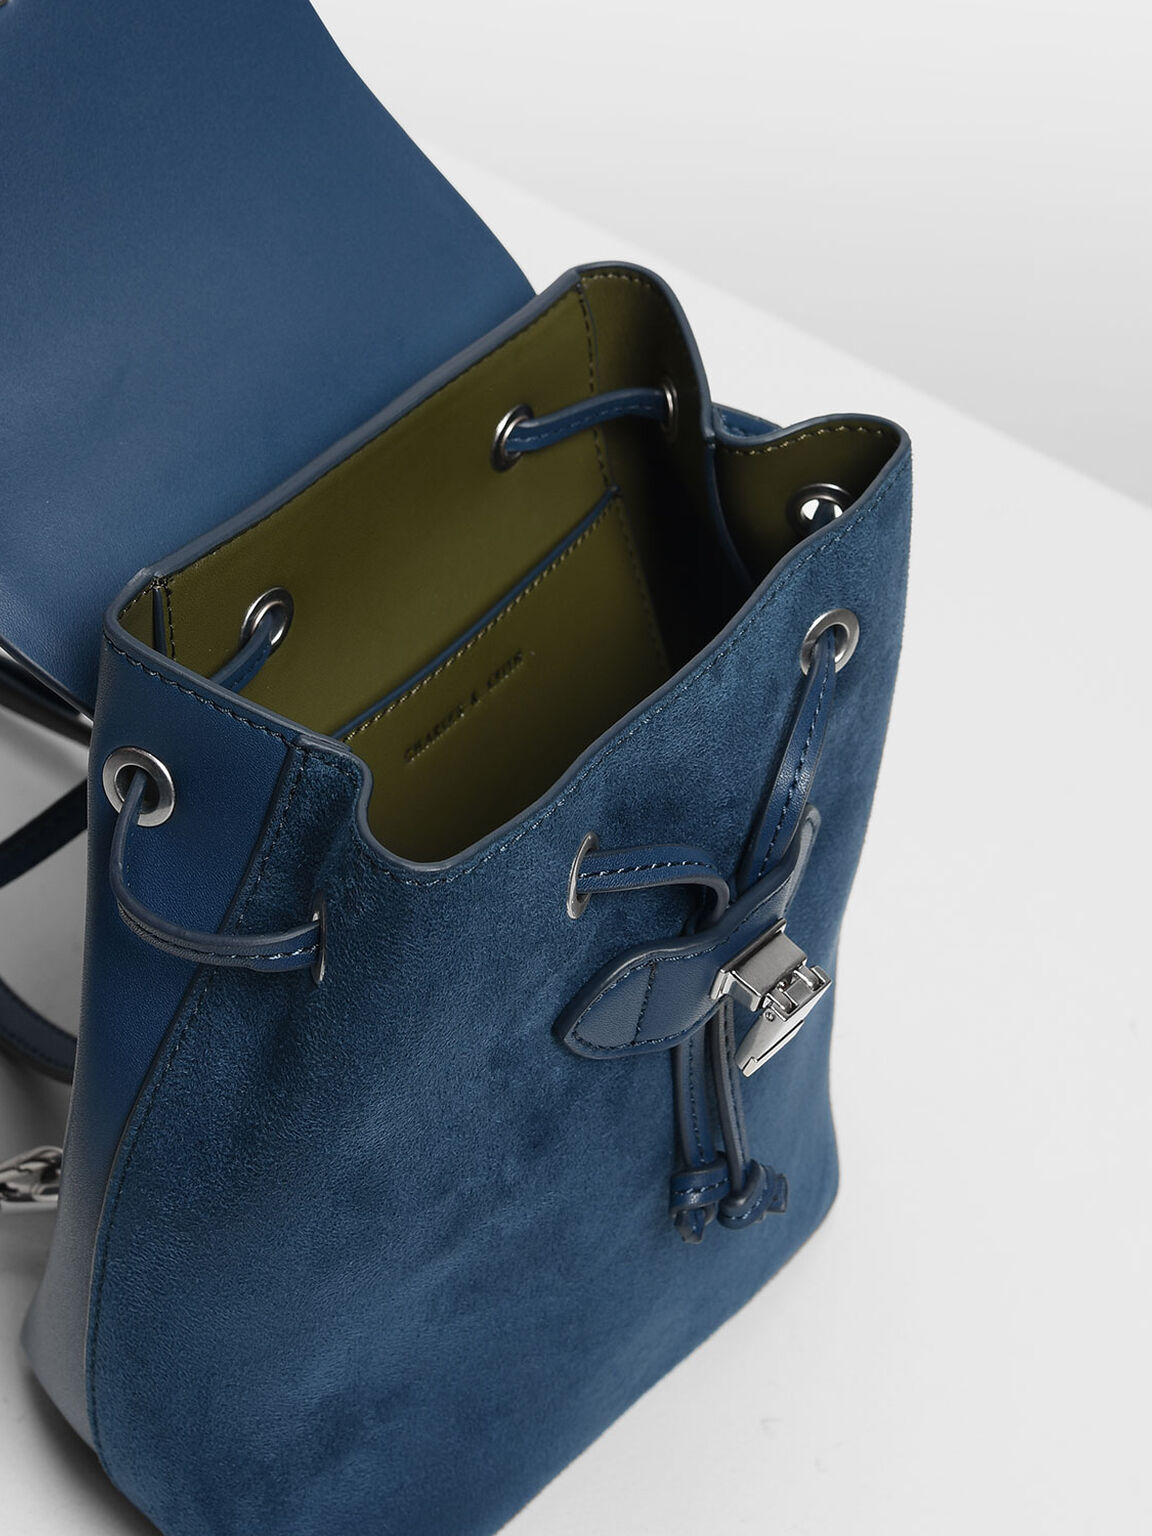 Classic Push Lock Backpack, Blue, hi-res